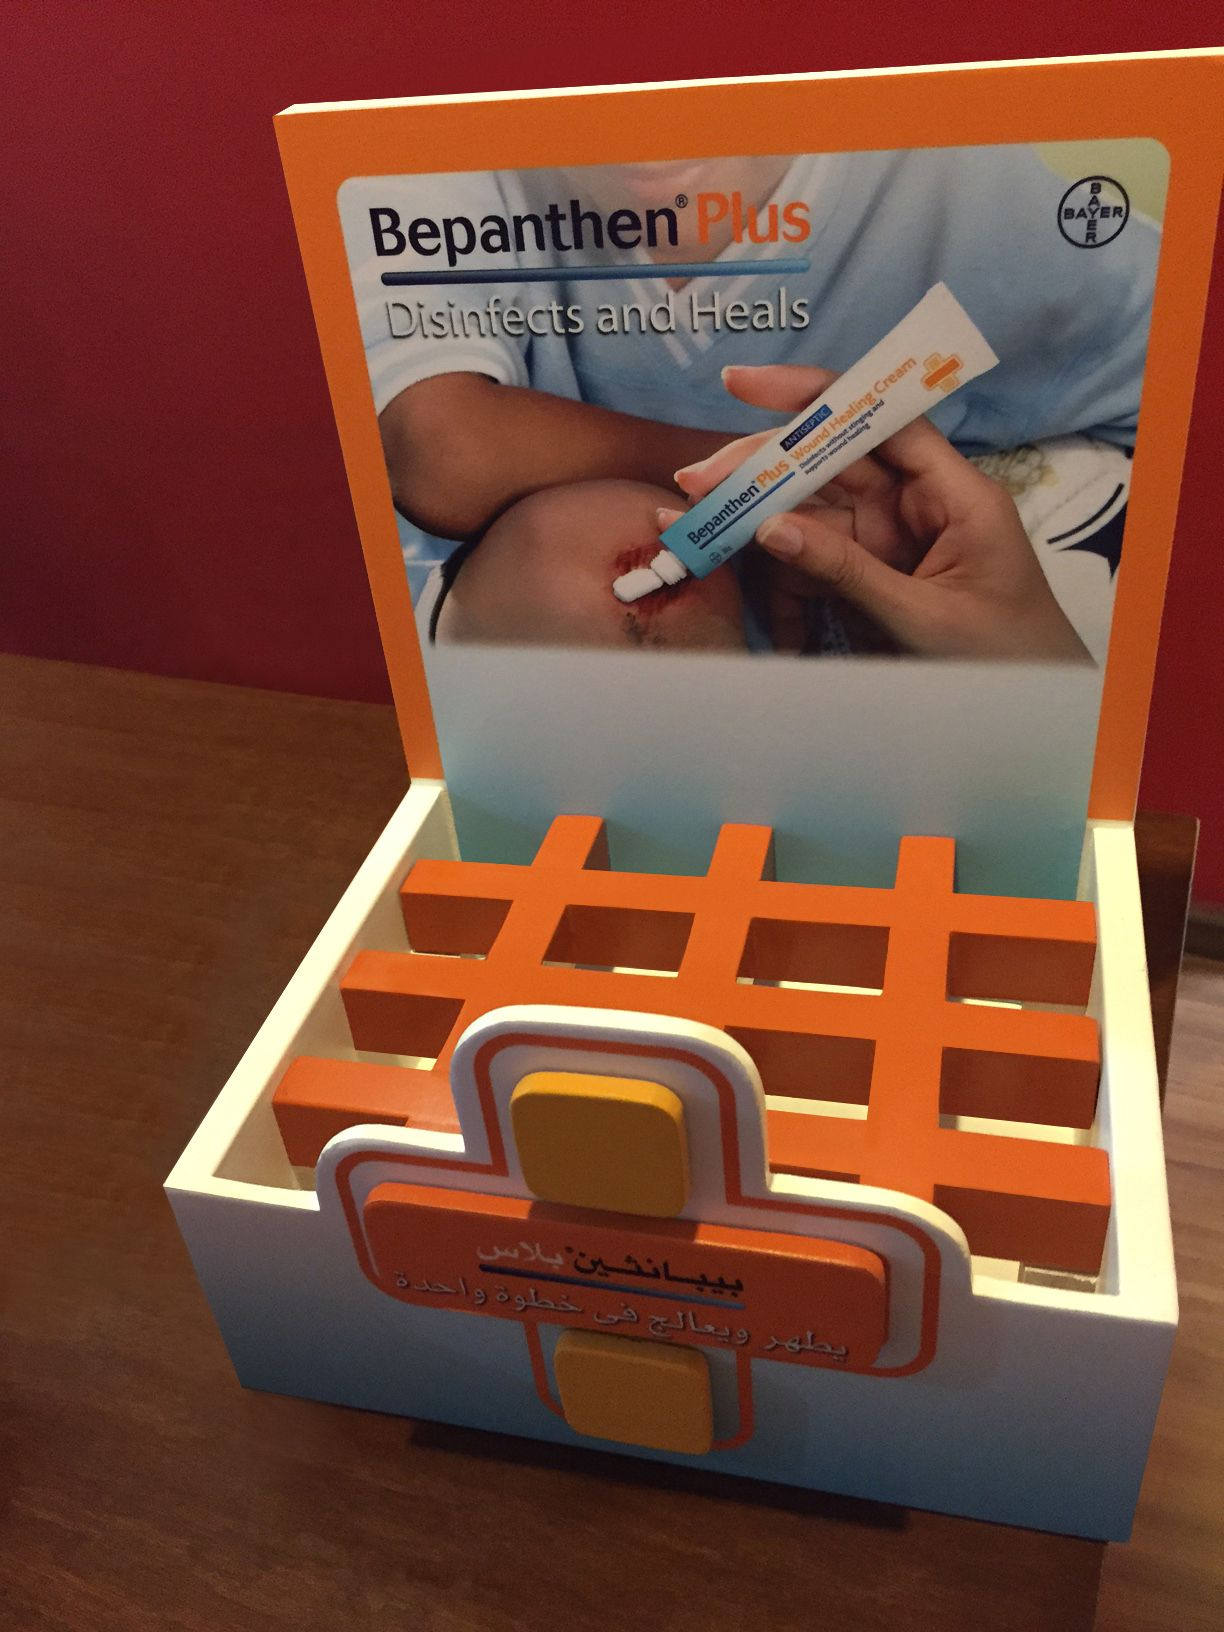 Creative display stand for an international pharmaceutical brand in